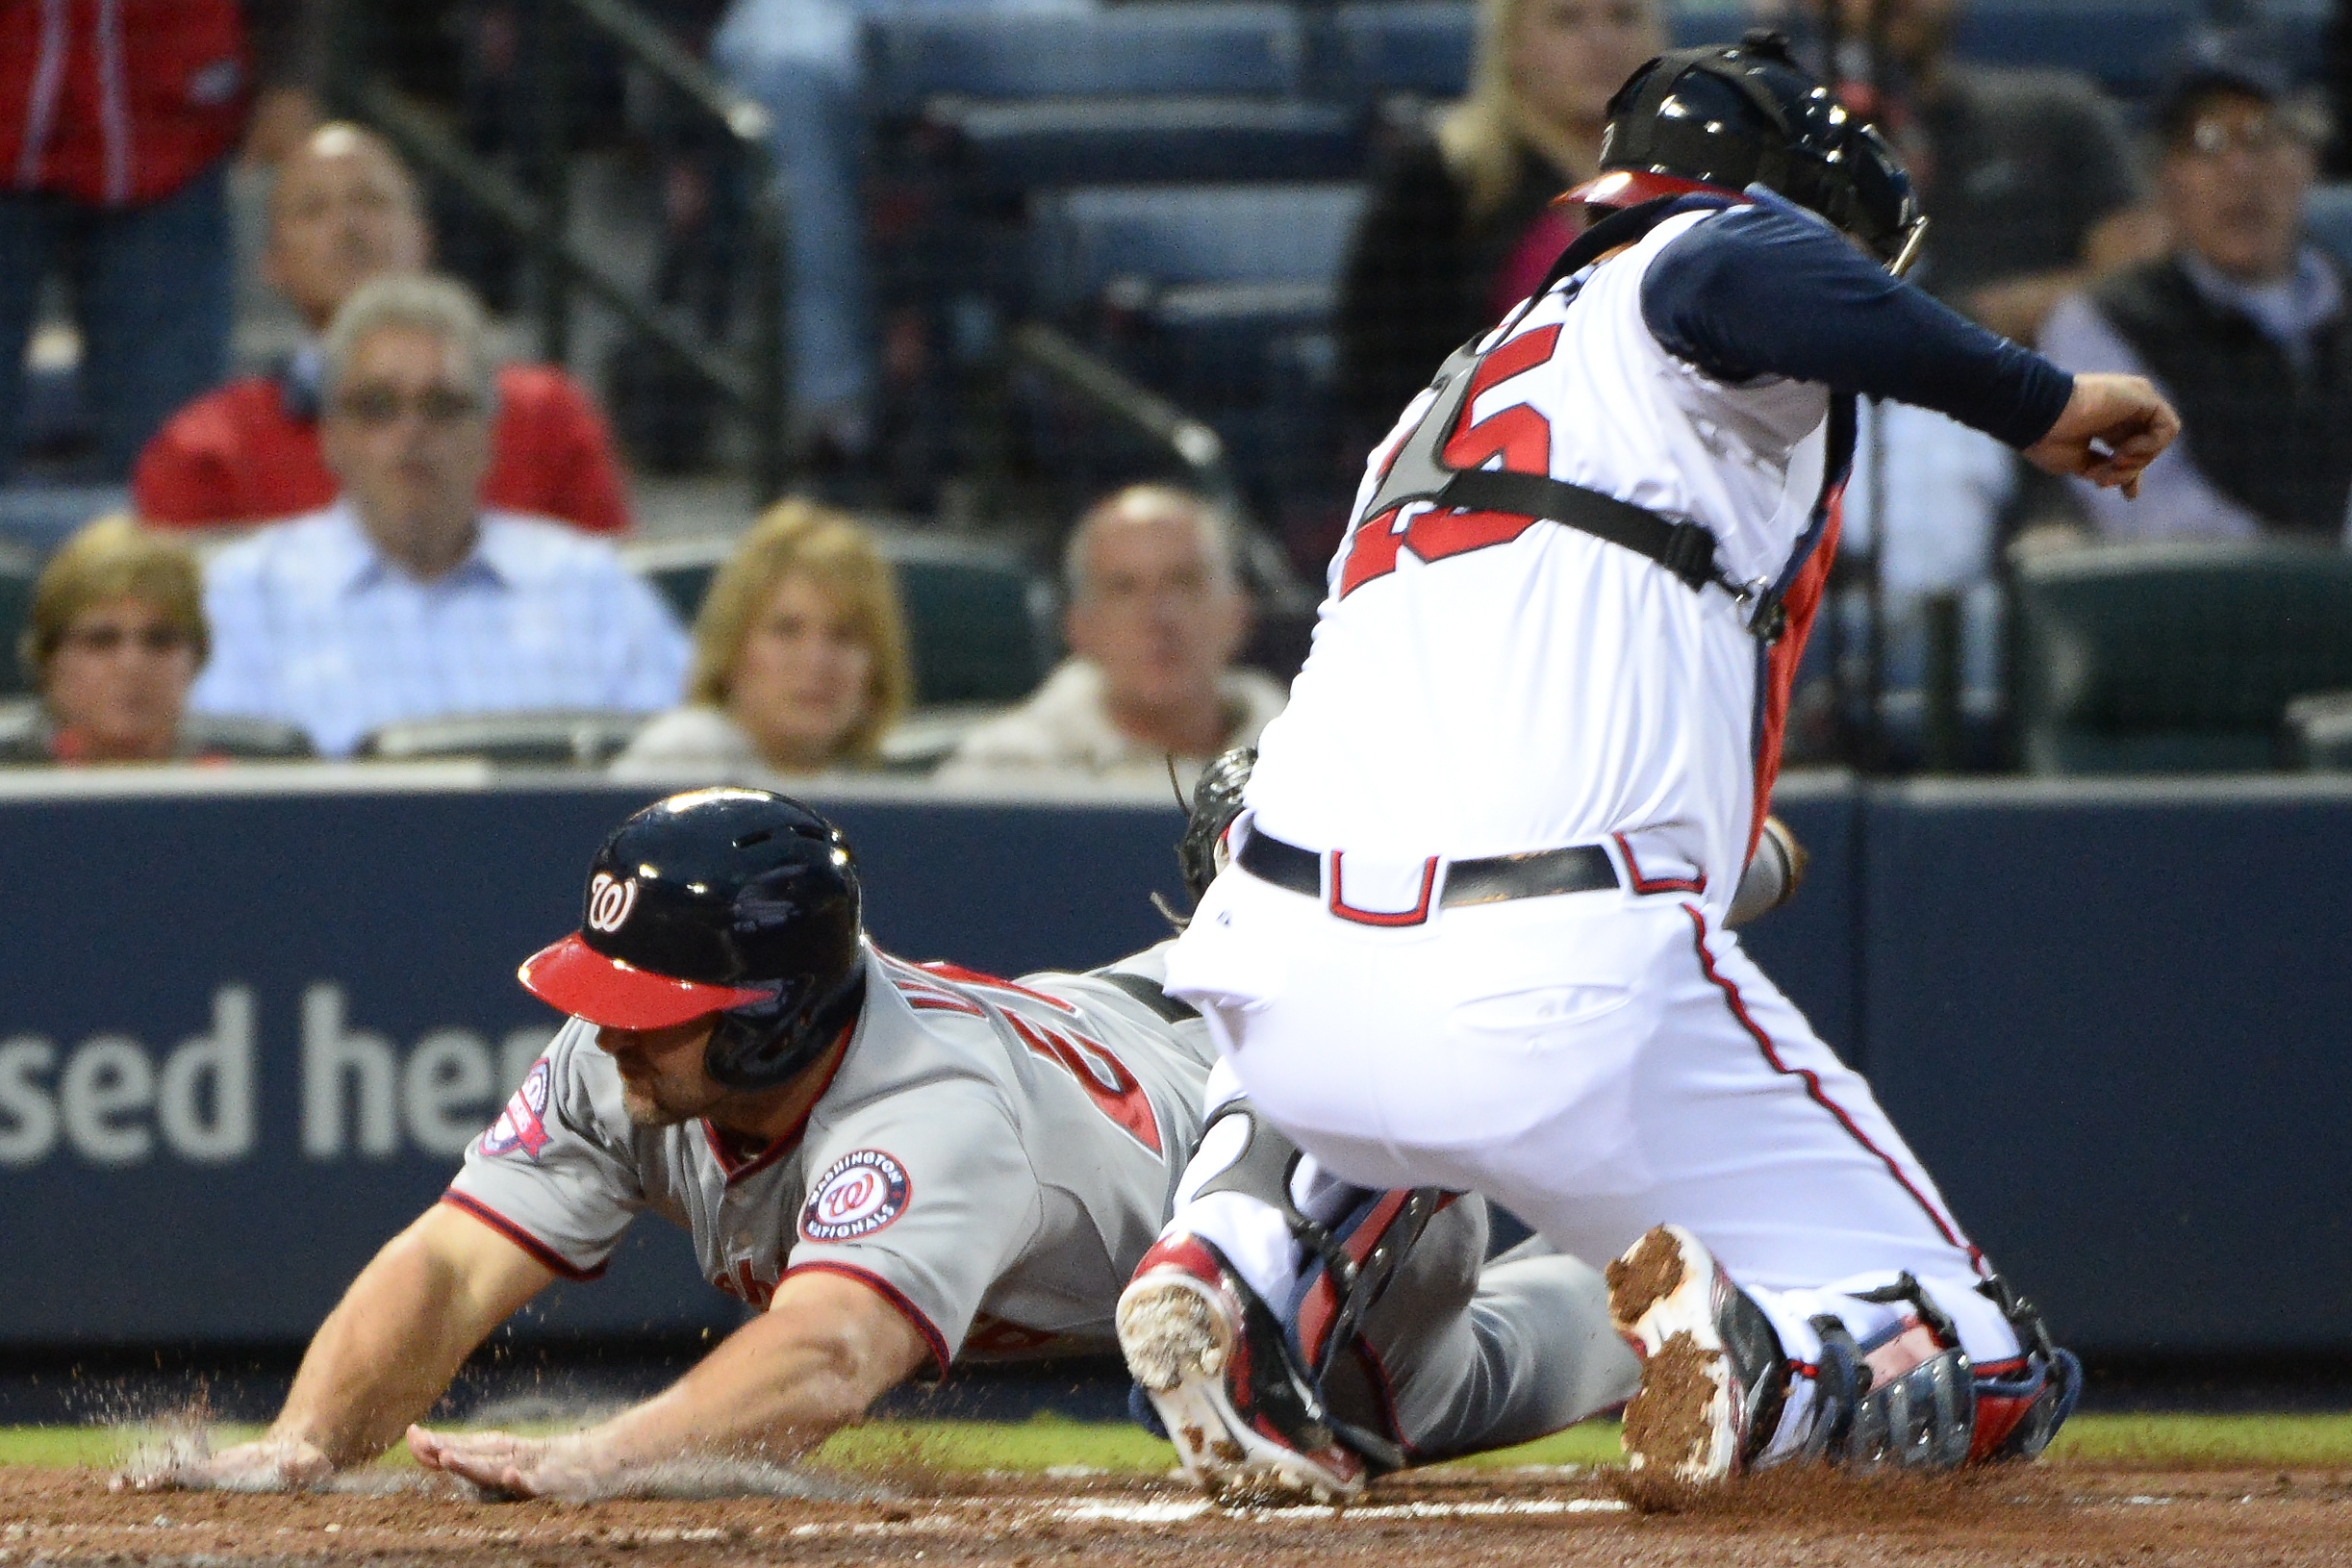 Washington Nationals' Dan Uggla, left, scores past Atlanta Braves catcher A.J. Pierzynski (15) on a three-run single by pitcher Jordan Zimmermann during the fourth inning inning of a baseball game Wednesday, April 29, 2015, in Atlanta. (AP Photo/David Tul